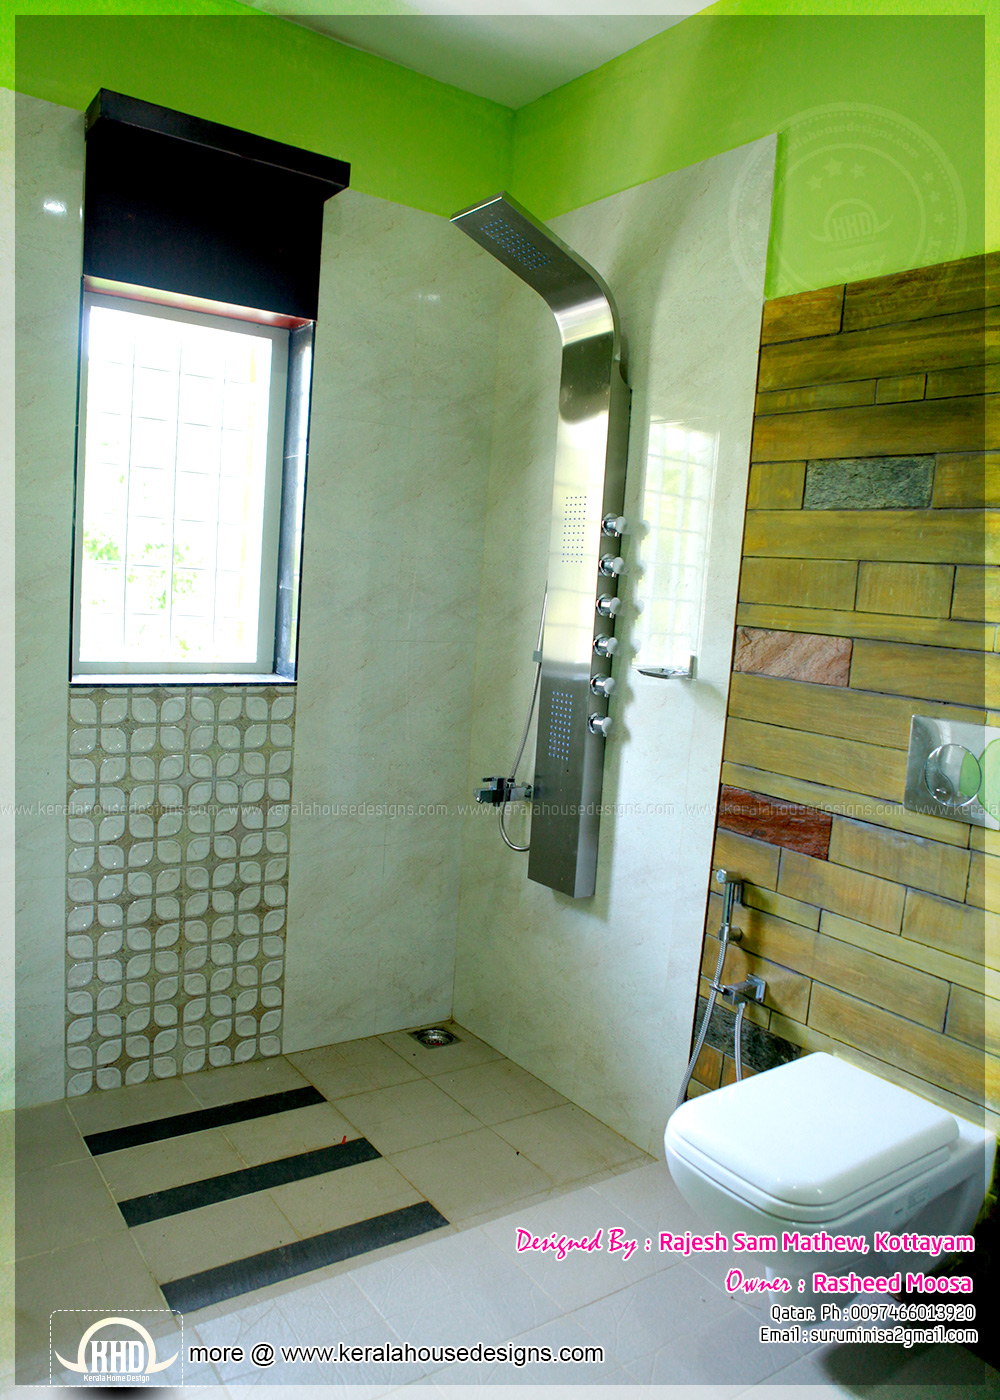 Kerala interior design with photos kerala home design for Latest bathroom interior